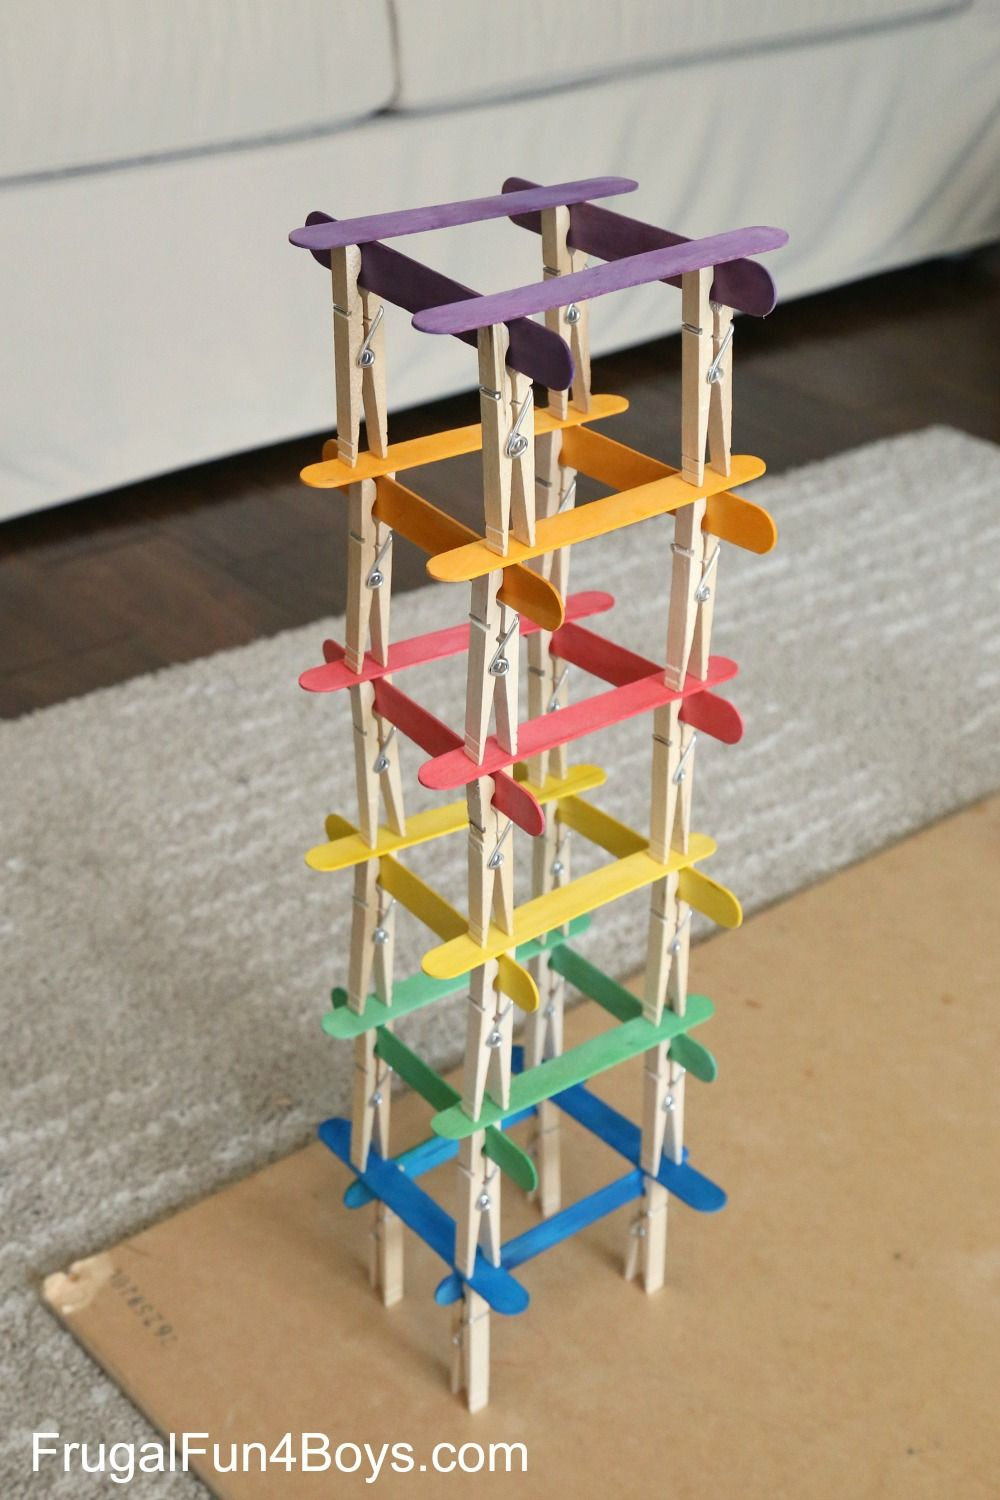 5 Engineering Challenges With Clothespins Binder Clips And Craft